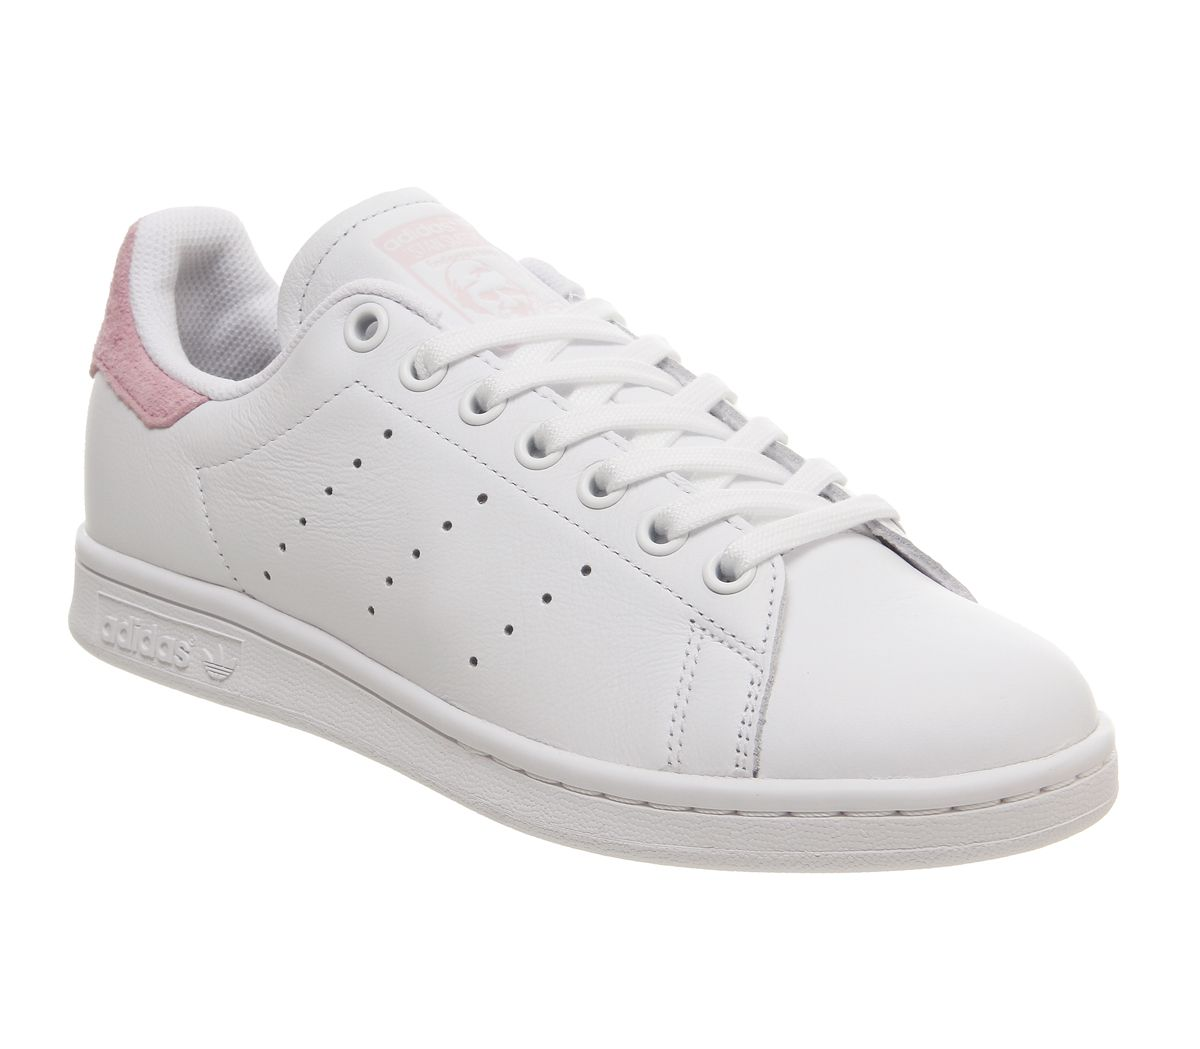 0b9f8de7863 adidas Stan Smith Trainers White Clear Pink Copper Exclusive - Hers ...